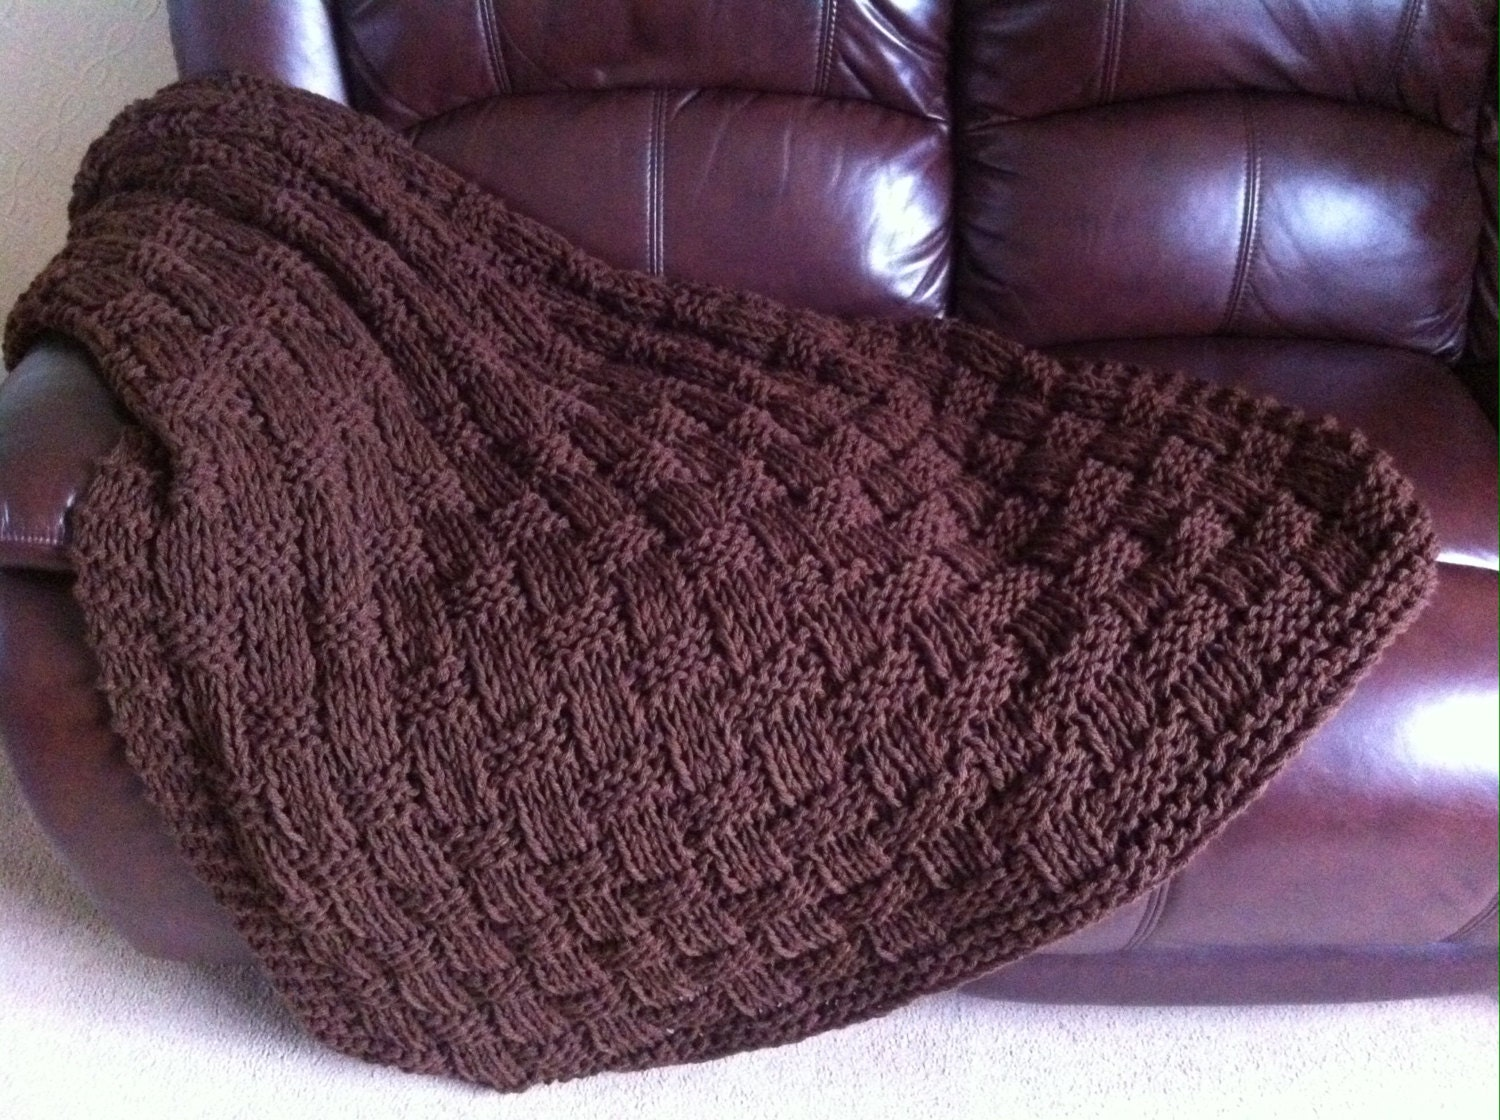 Knitting Pattern Blanket Throw : Chunky Basket Weave Blanket / Sofa Throw Knitting pattern